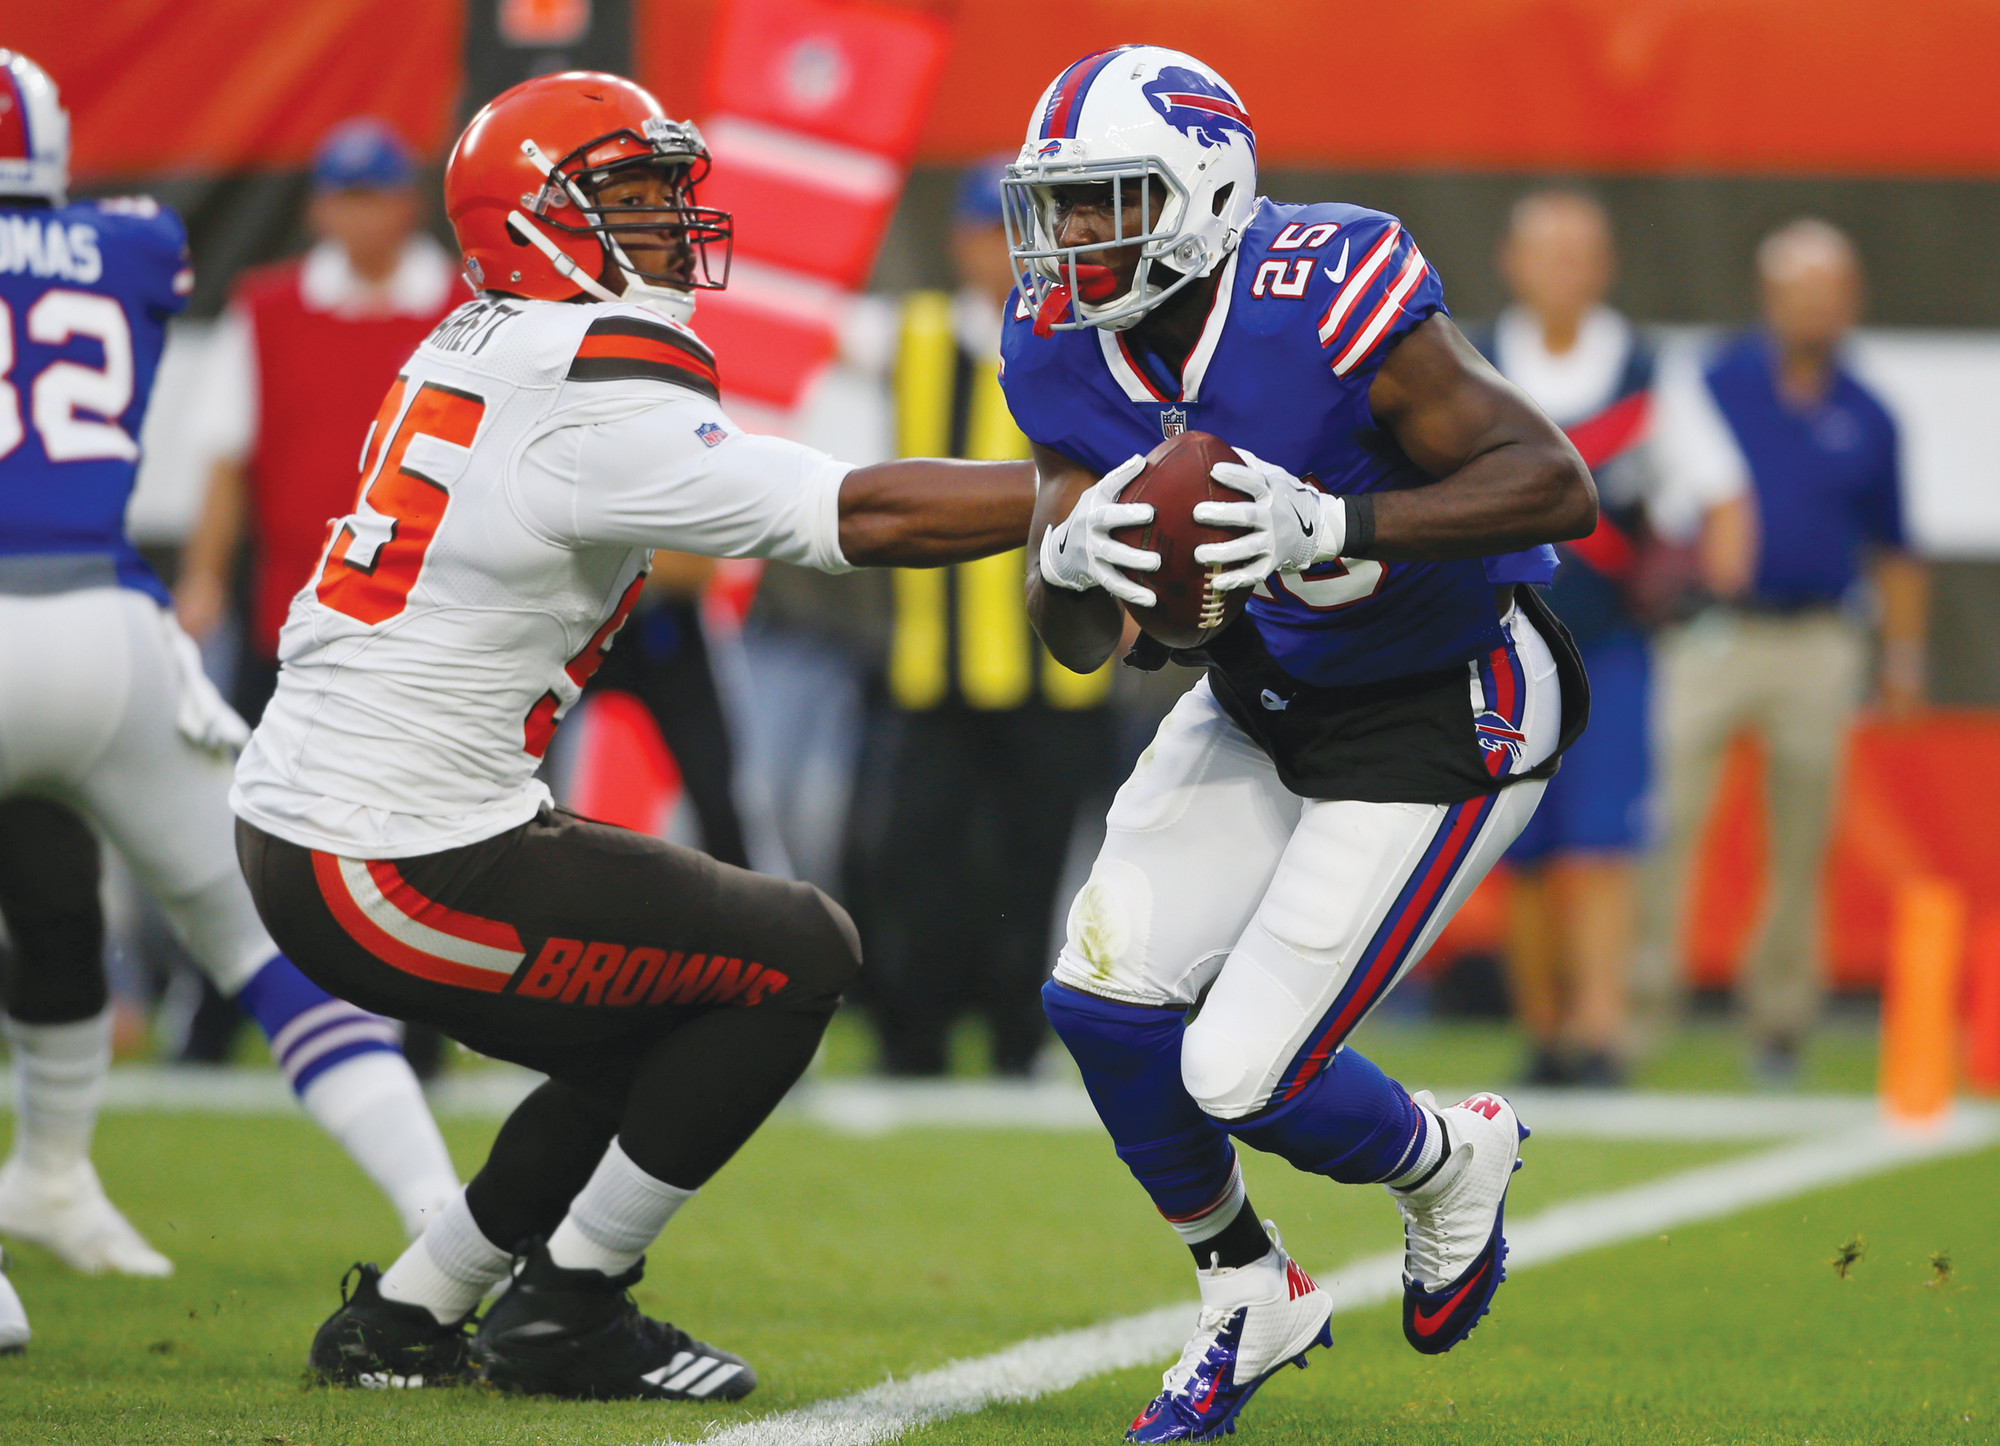 f6b3c16a68d Buffalo Bills running back LeSean McCoy (25) rushes against Cleveland  Browns defensive end Myles